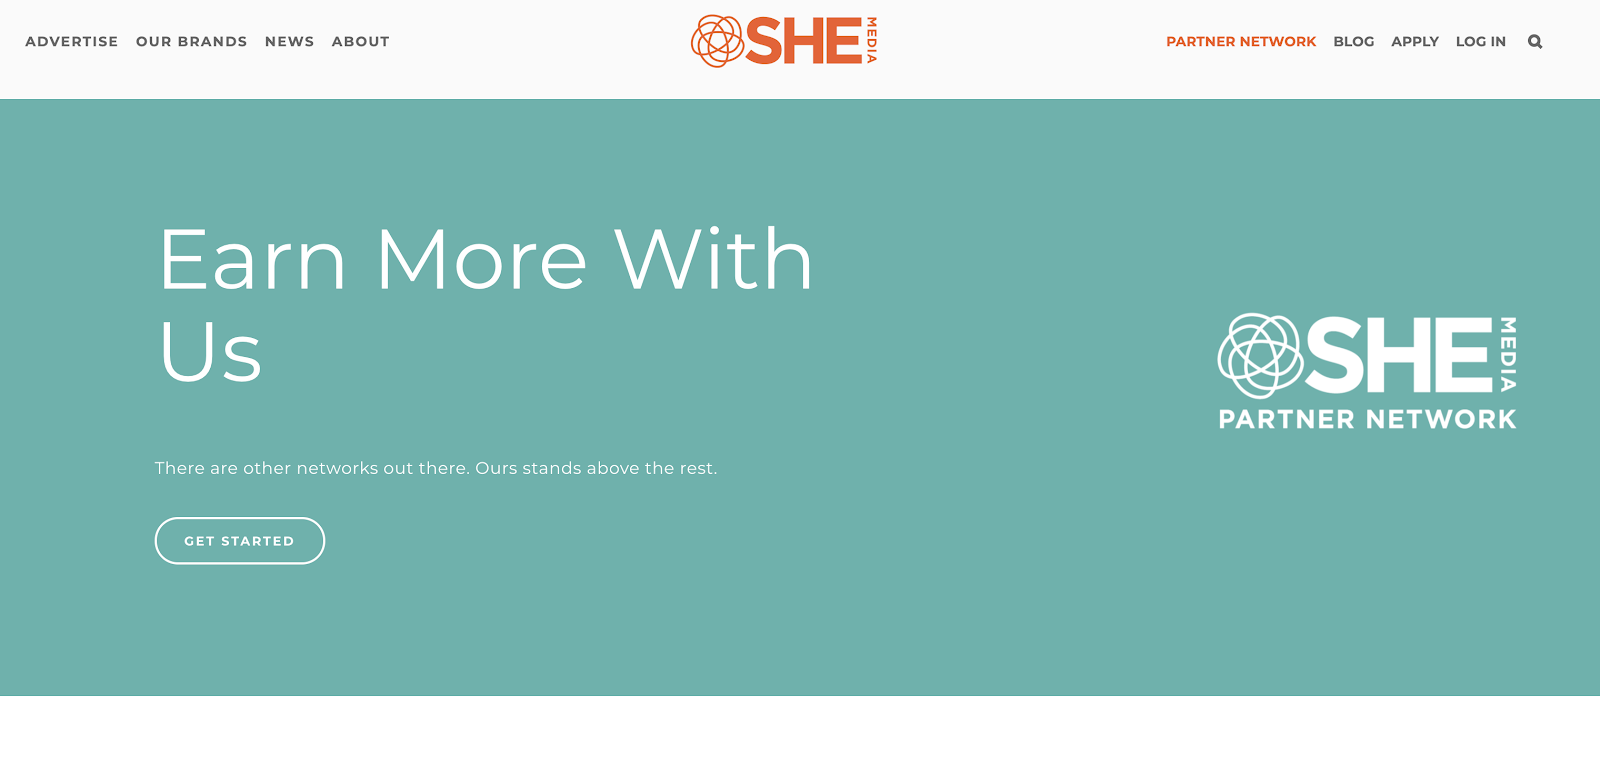 Sign up Process for the SHE Media Partner Network